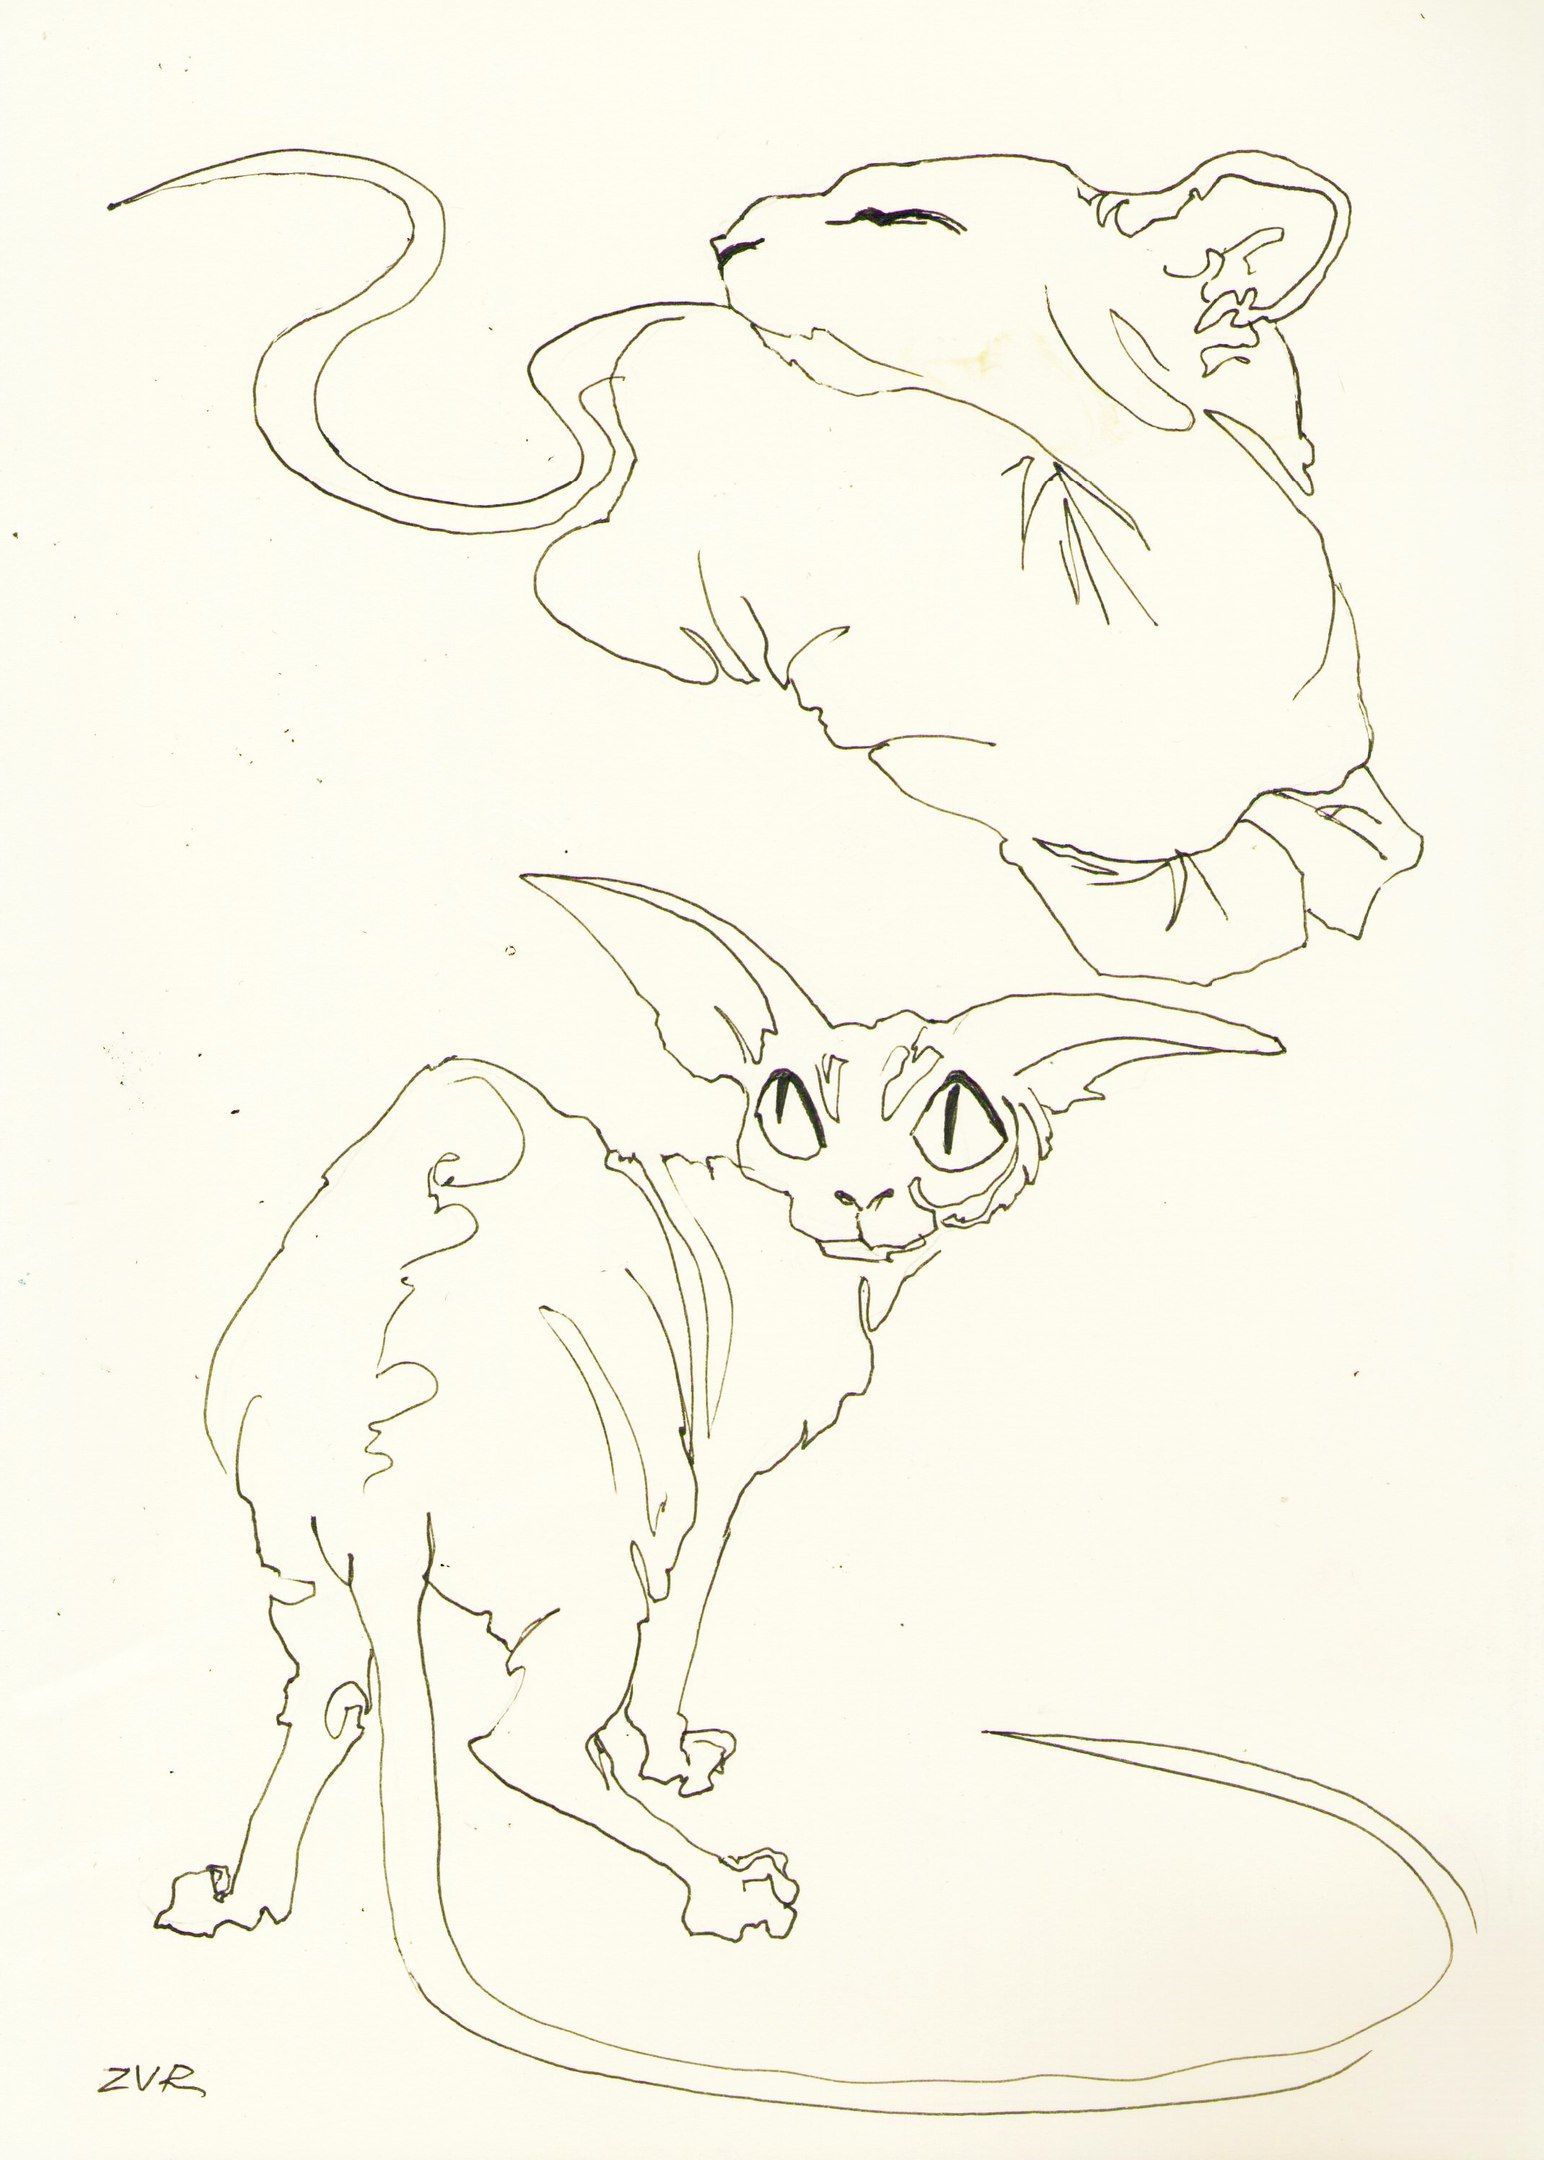 Zavar_art Kitten art, Cat sketch, Animal stencil